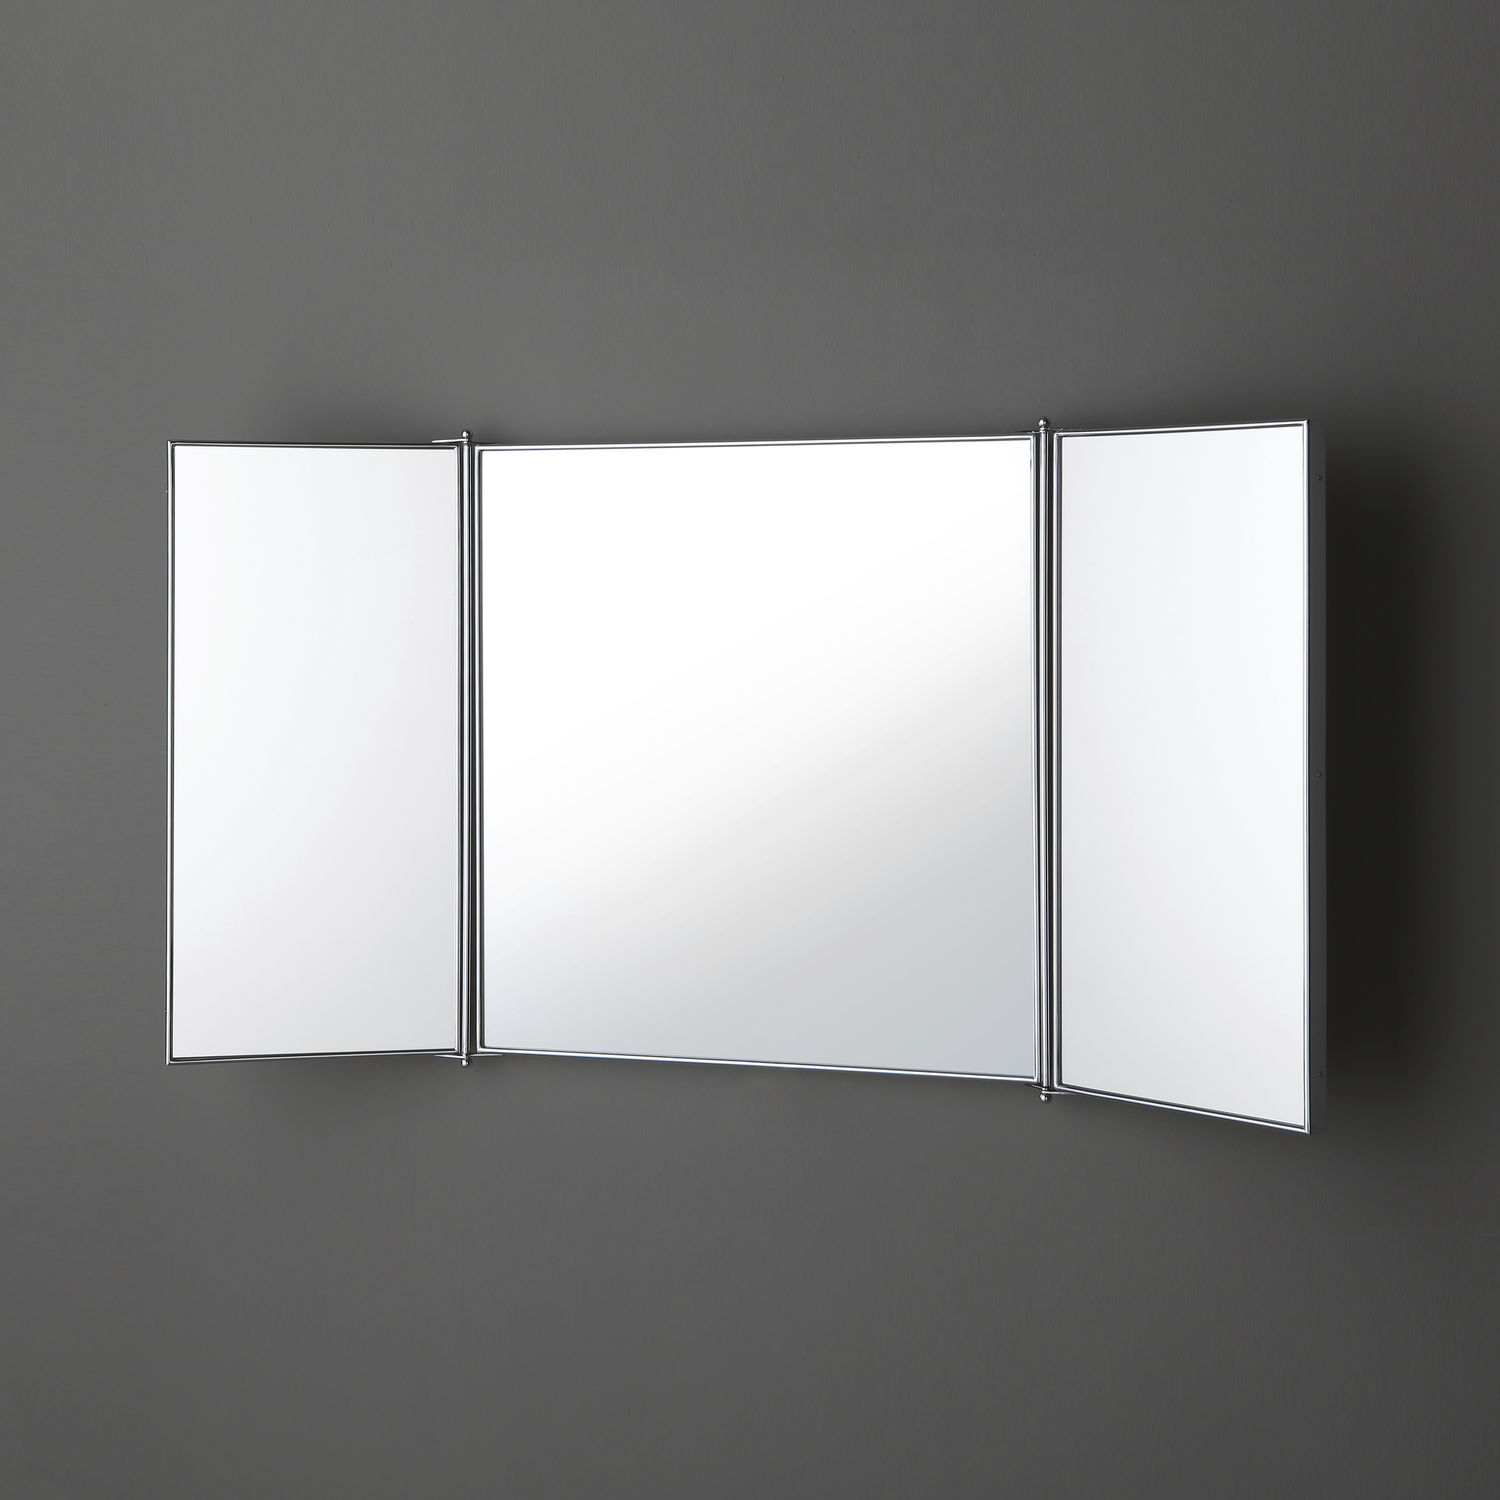 wall mounted bathroom mirror classic rectangular for hotels